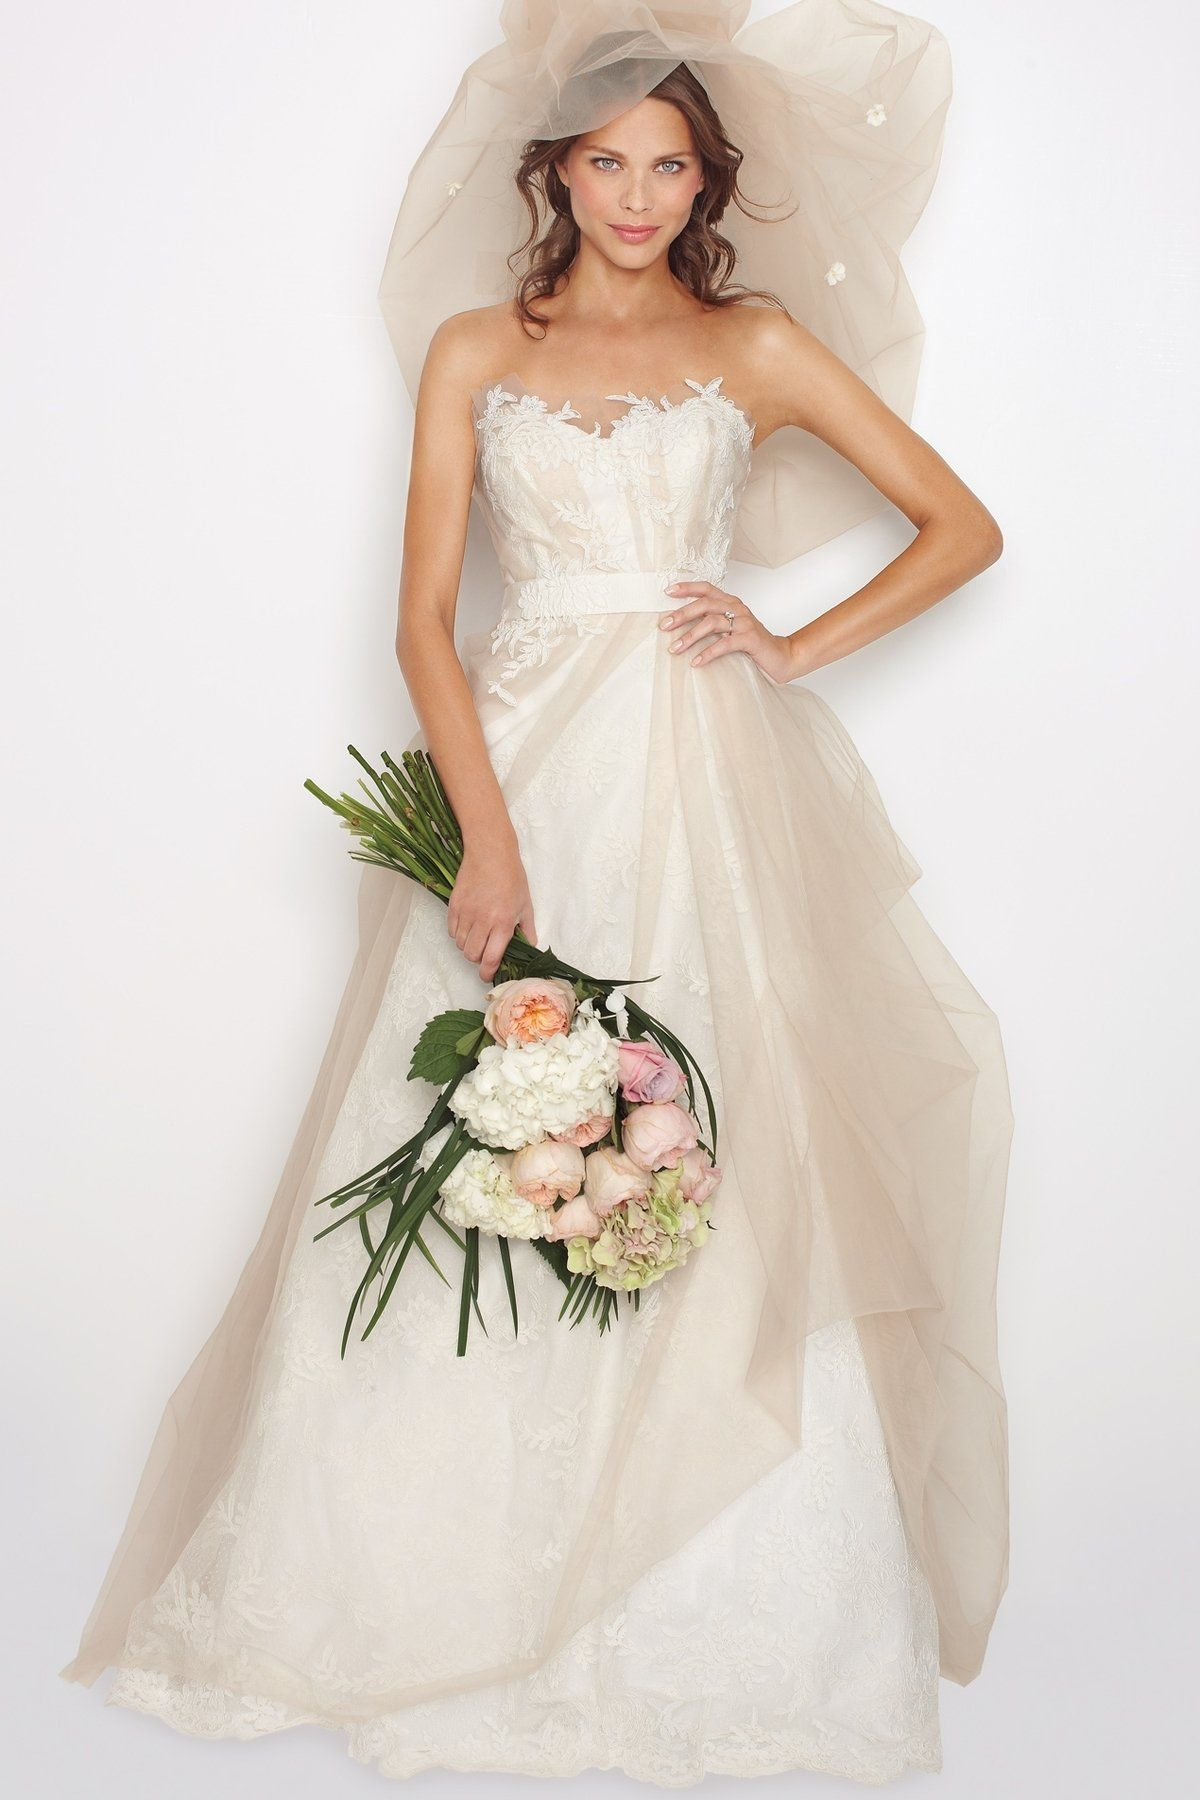 Cheap rustic wedding dresses  te te bouquet  Alius Wedding  Pinterest  Bridal gowns Gowns and